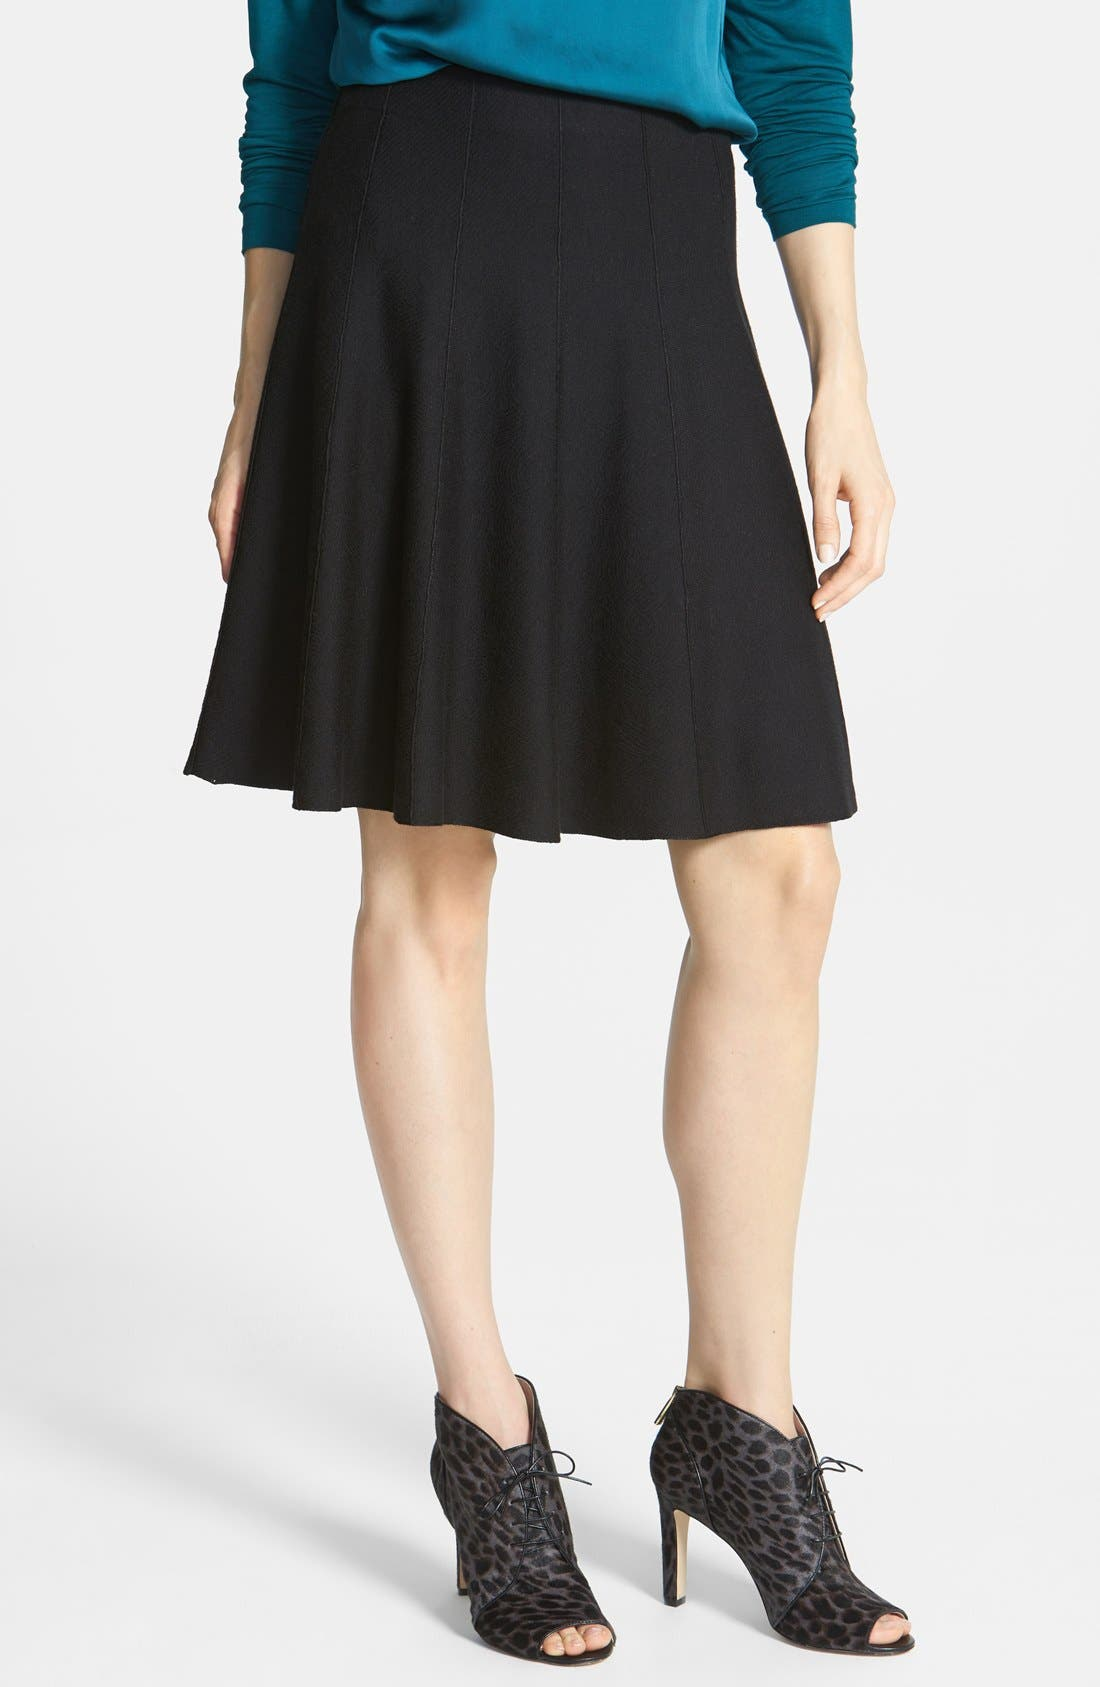 Alternate Image 1 Selected - NIC+ZOE 'Paneled Twirl' Flirt Skirt